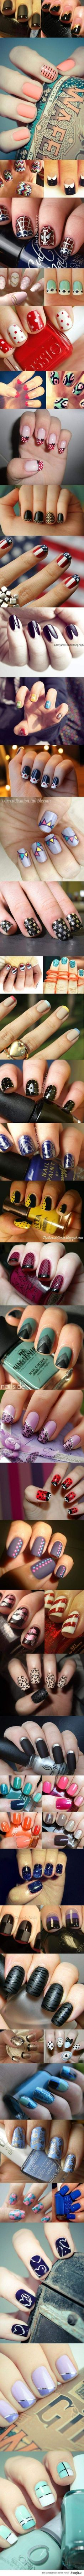 Nail art, most of these are really cute